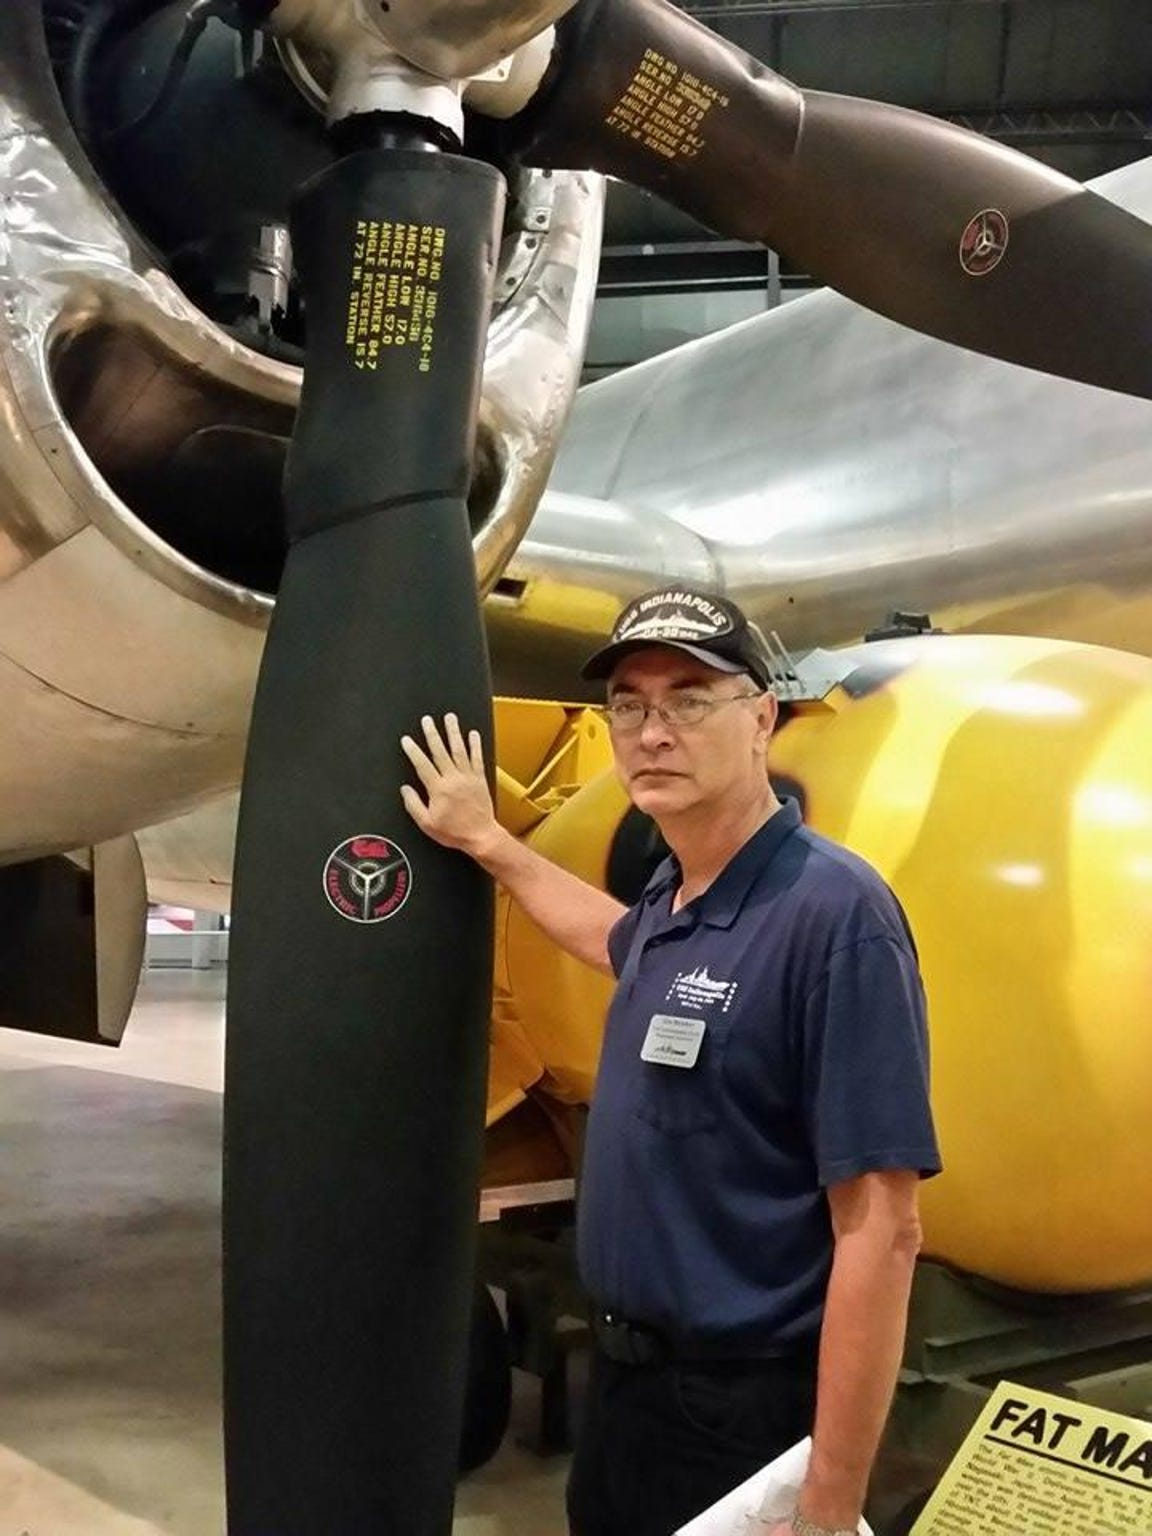 James Belcher Jr. at the Air Force Museum in Dayton,